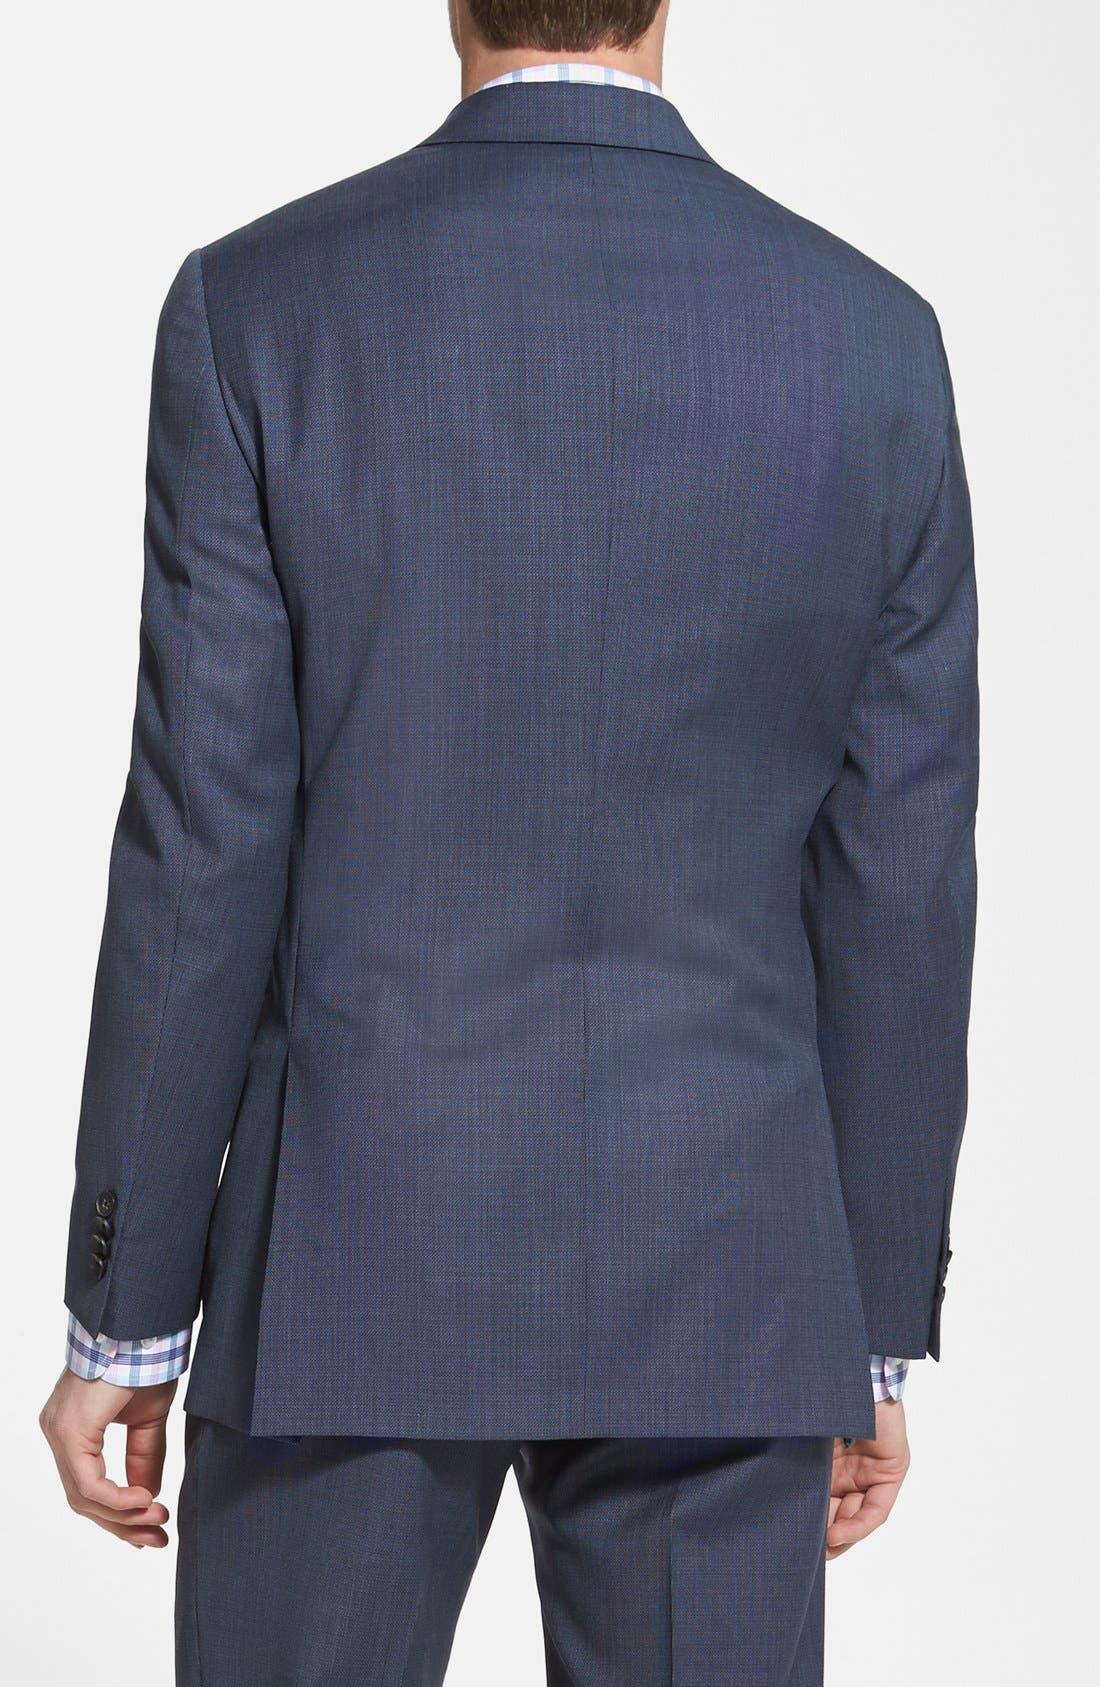 NY 2BTN SV FF CLASSIC FIT SUIT,                             Alternate thumbnail 5, color,                             429